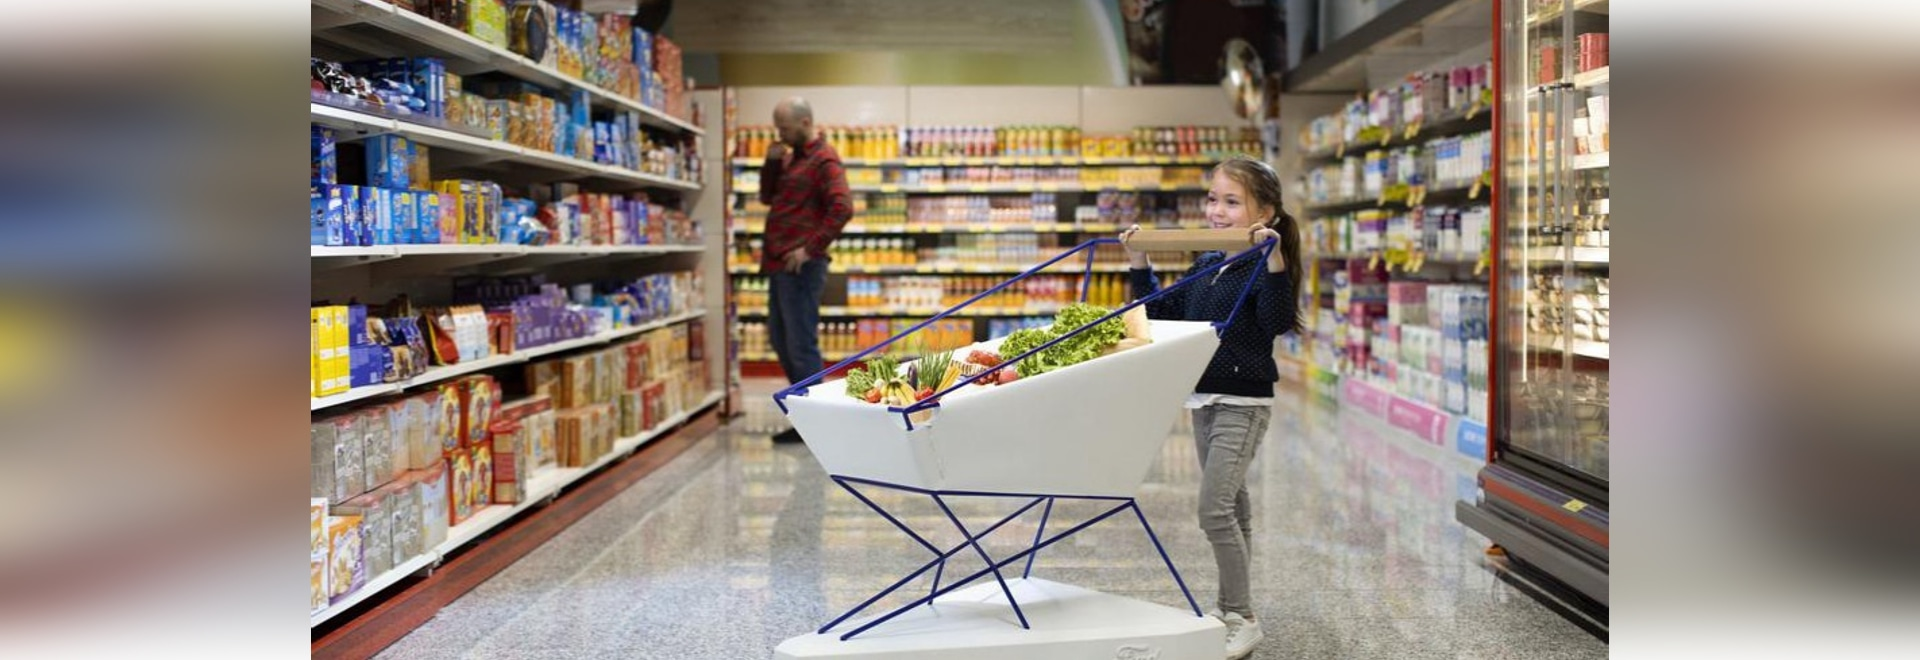 'SELF-BRAKING TROLLEY' COULD HELP TO MAKE SUPERMARKET SHOPPING A LESS STRESSFUL EXPERIENCE FOR PARENTS